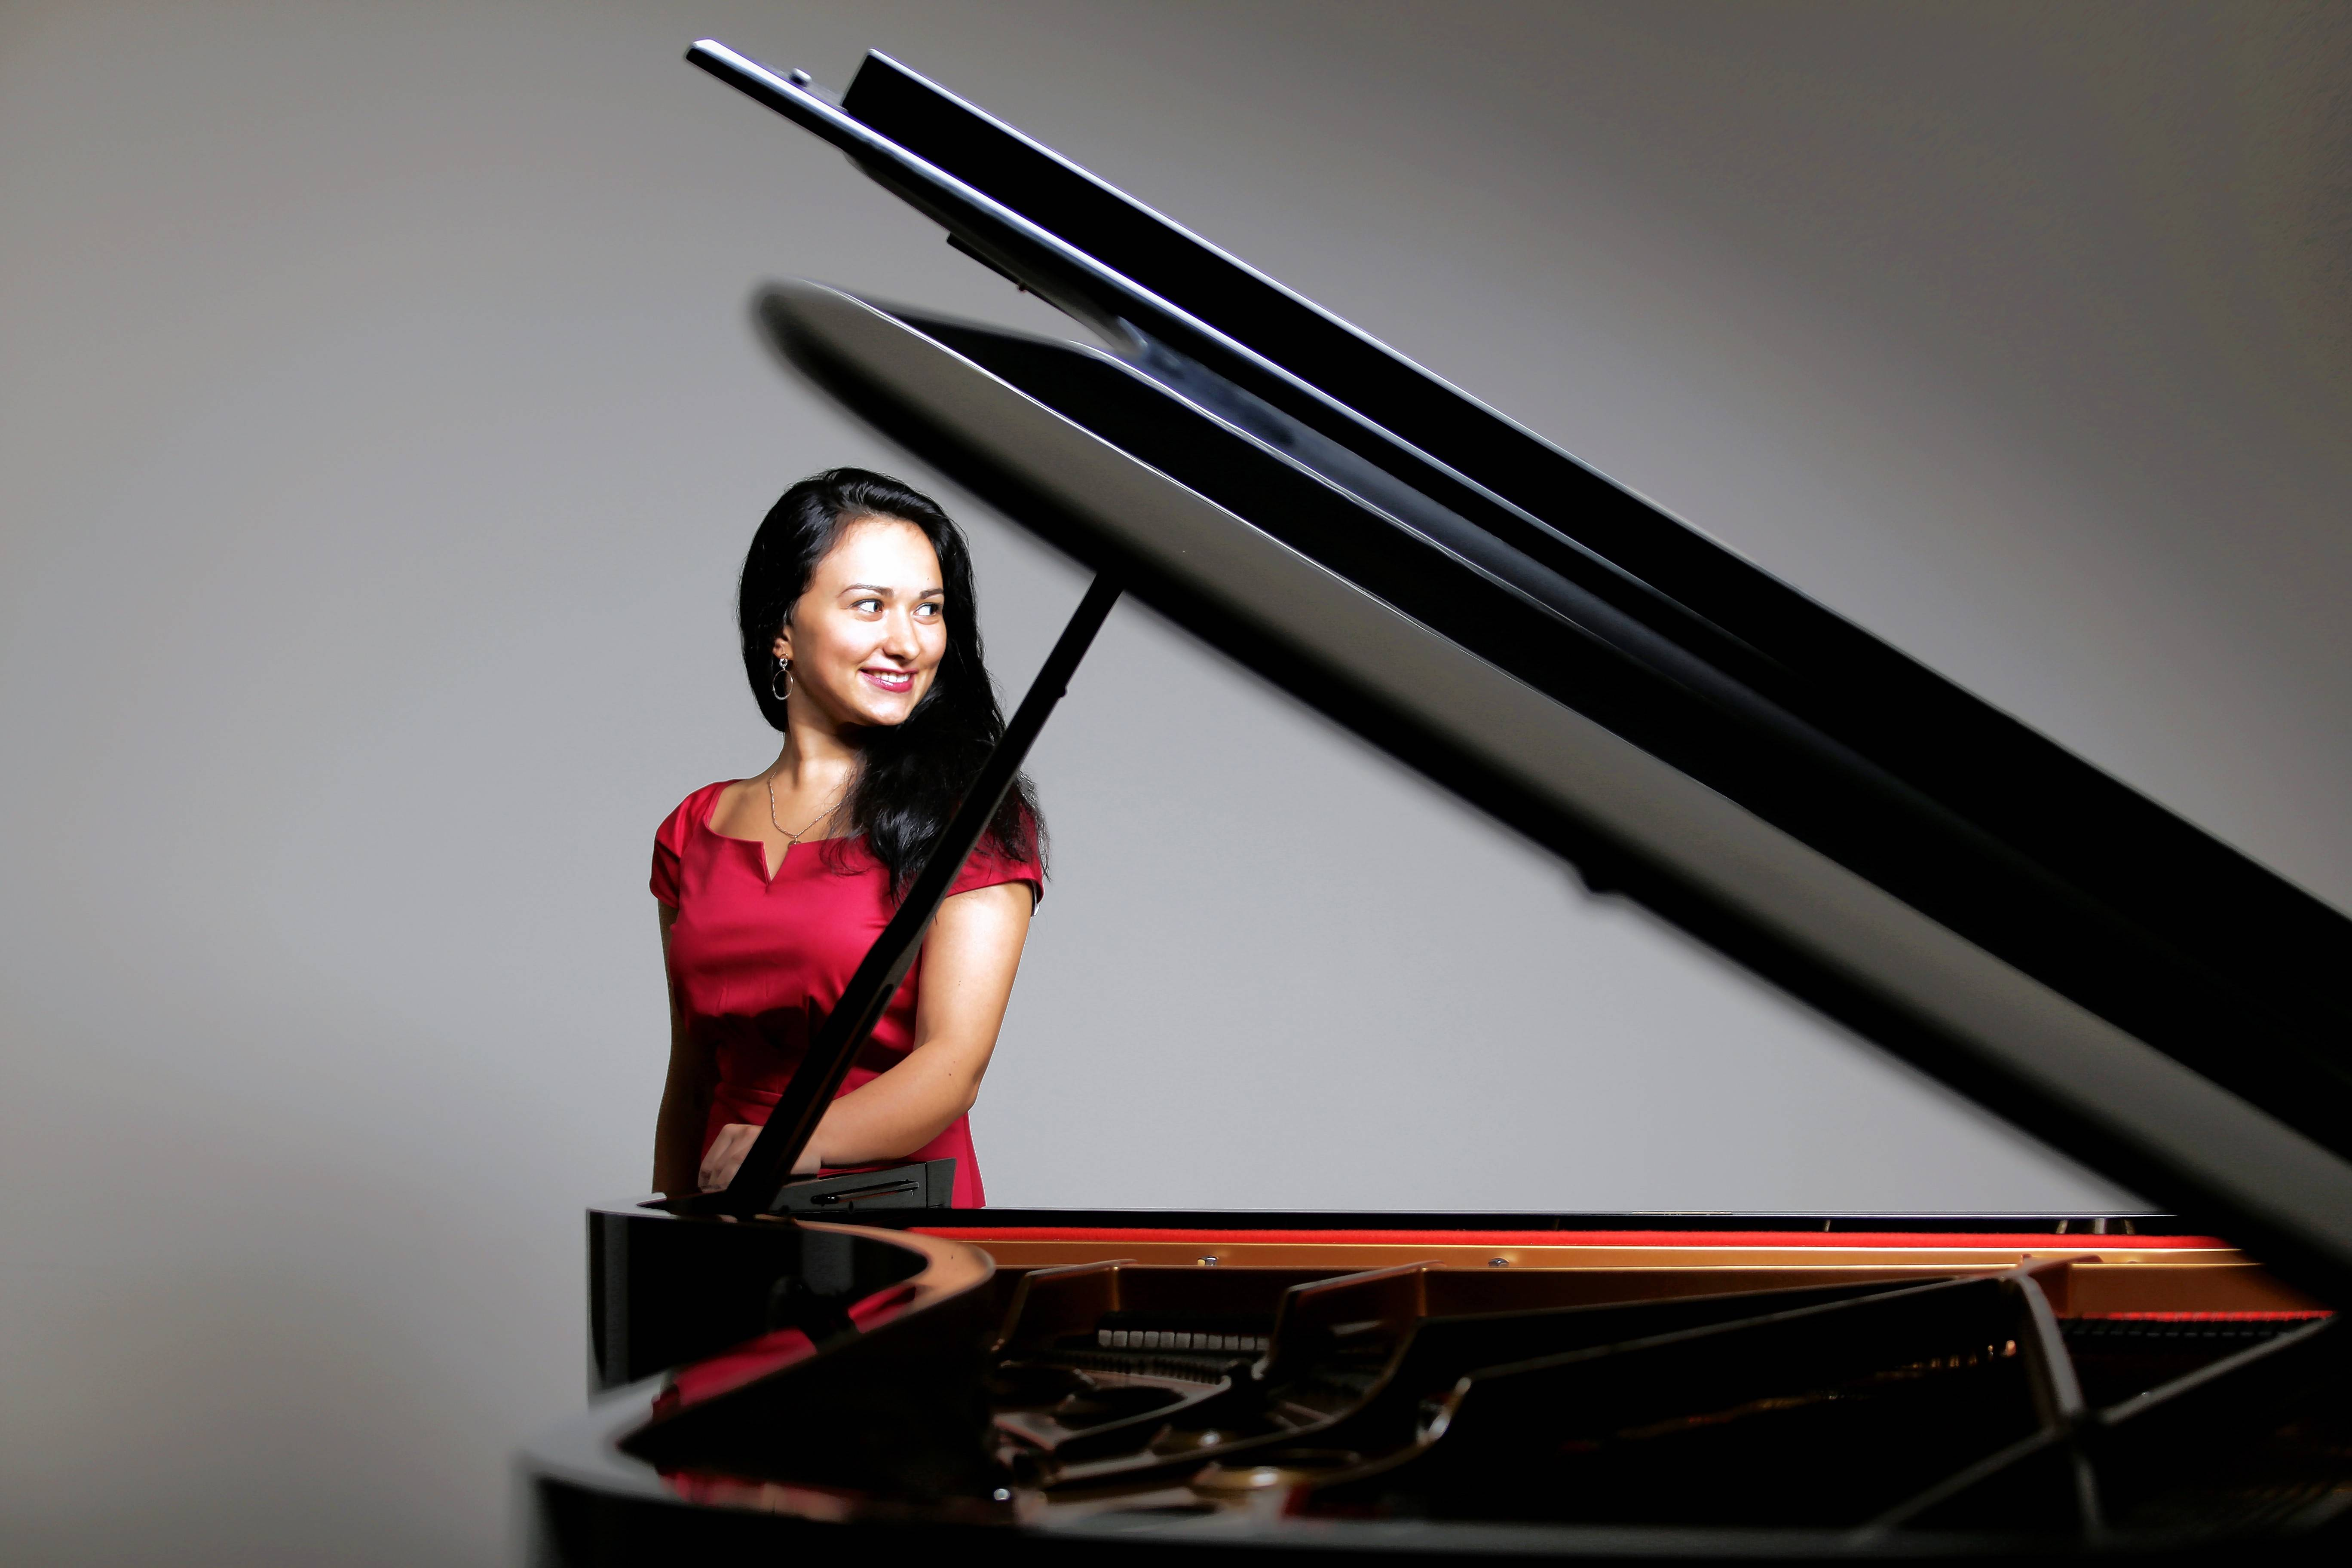 The Elgin Symphony Orchestra opens its new season with pianist Dinara Klinton as soloist.